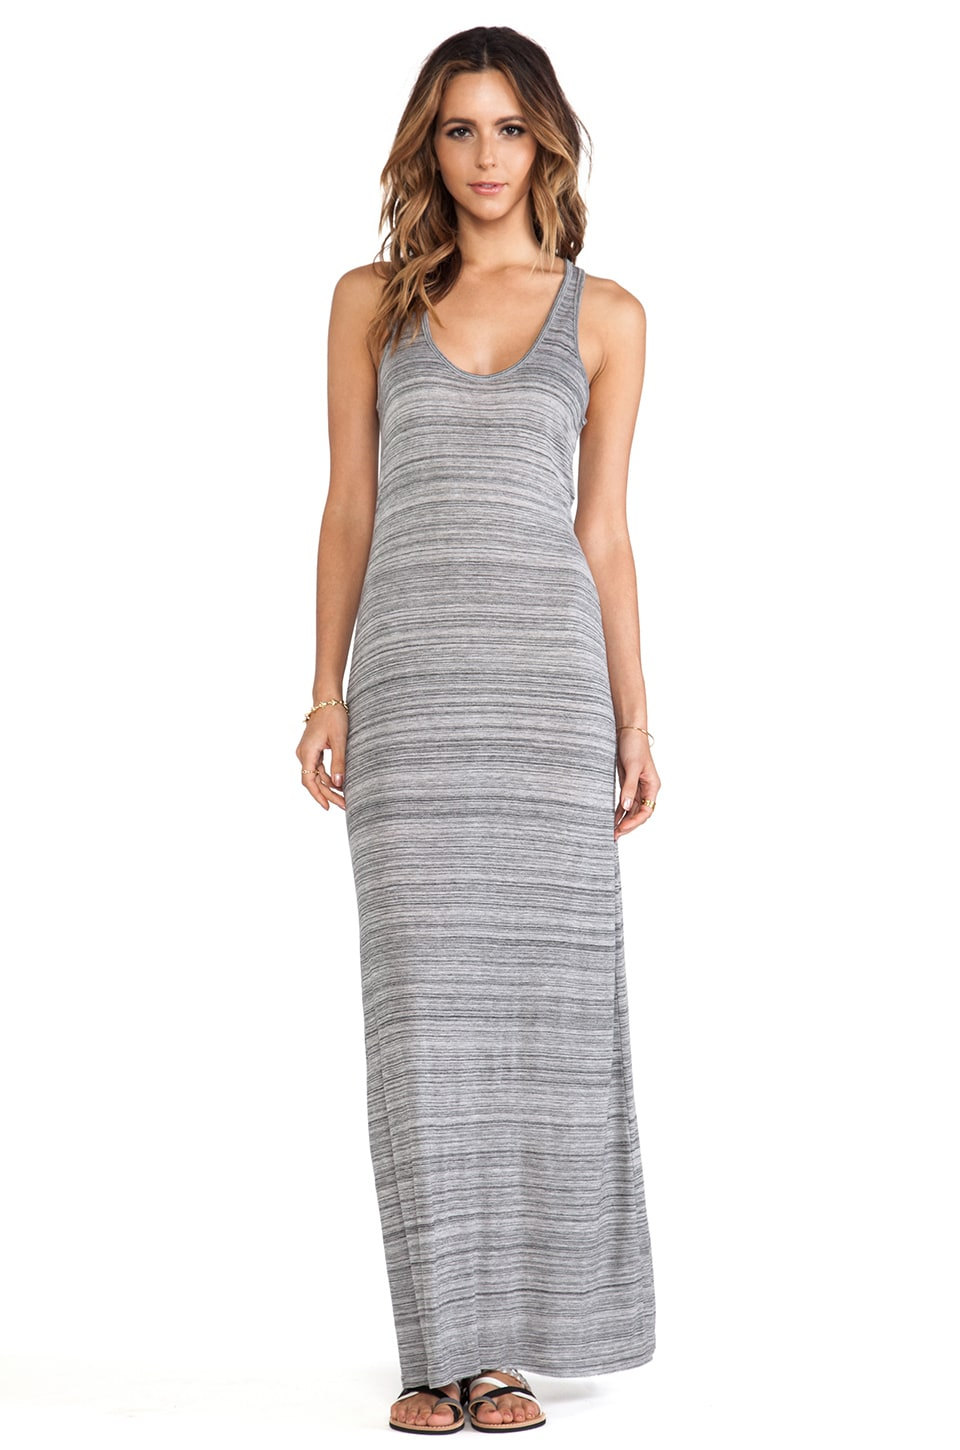 Vince Razer Back Maxi Dress in Light Grey & Black